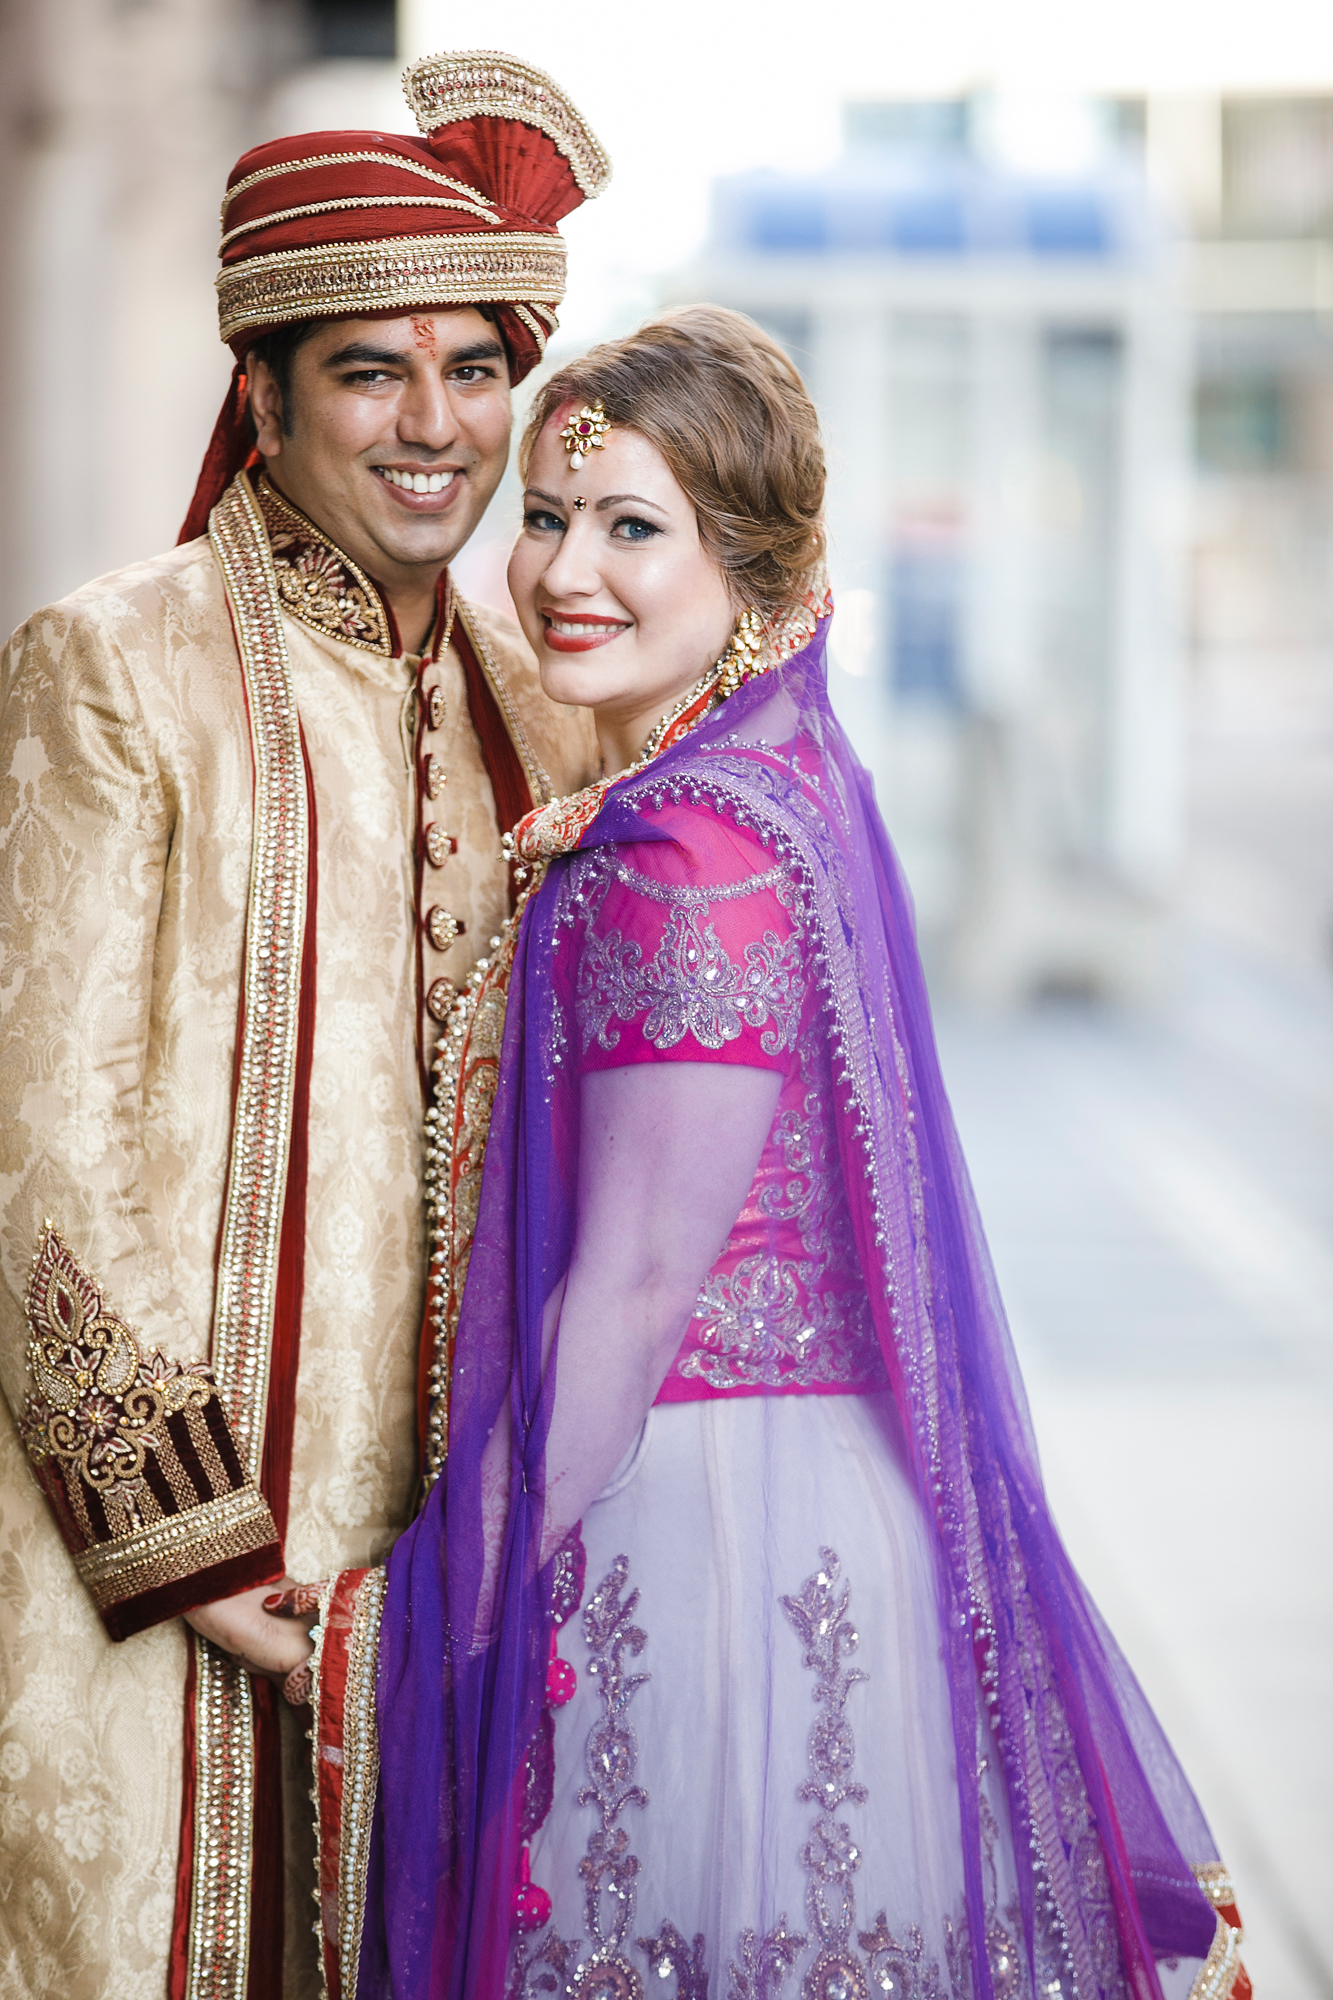 Indian_Minneapolis_Wedding_001.jpg